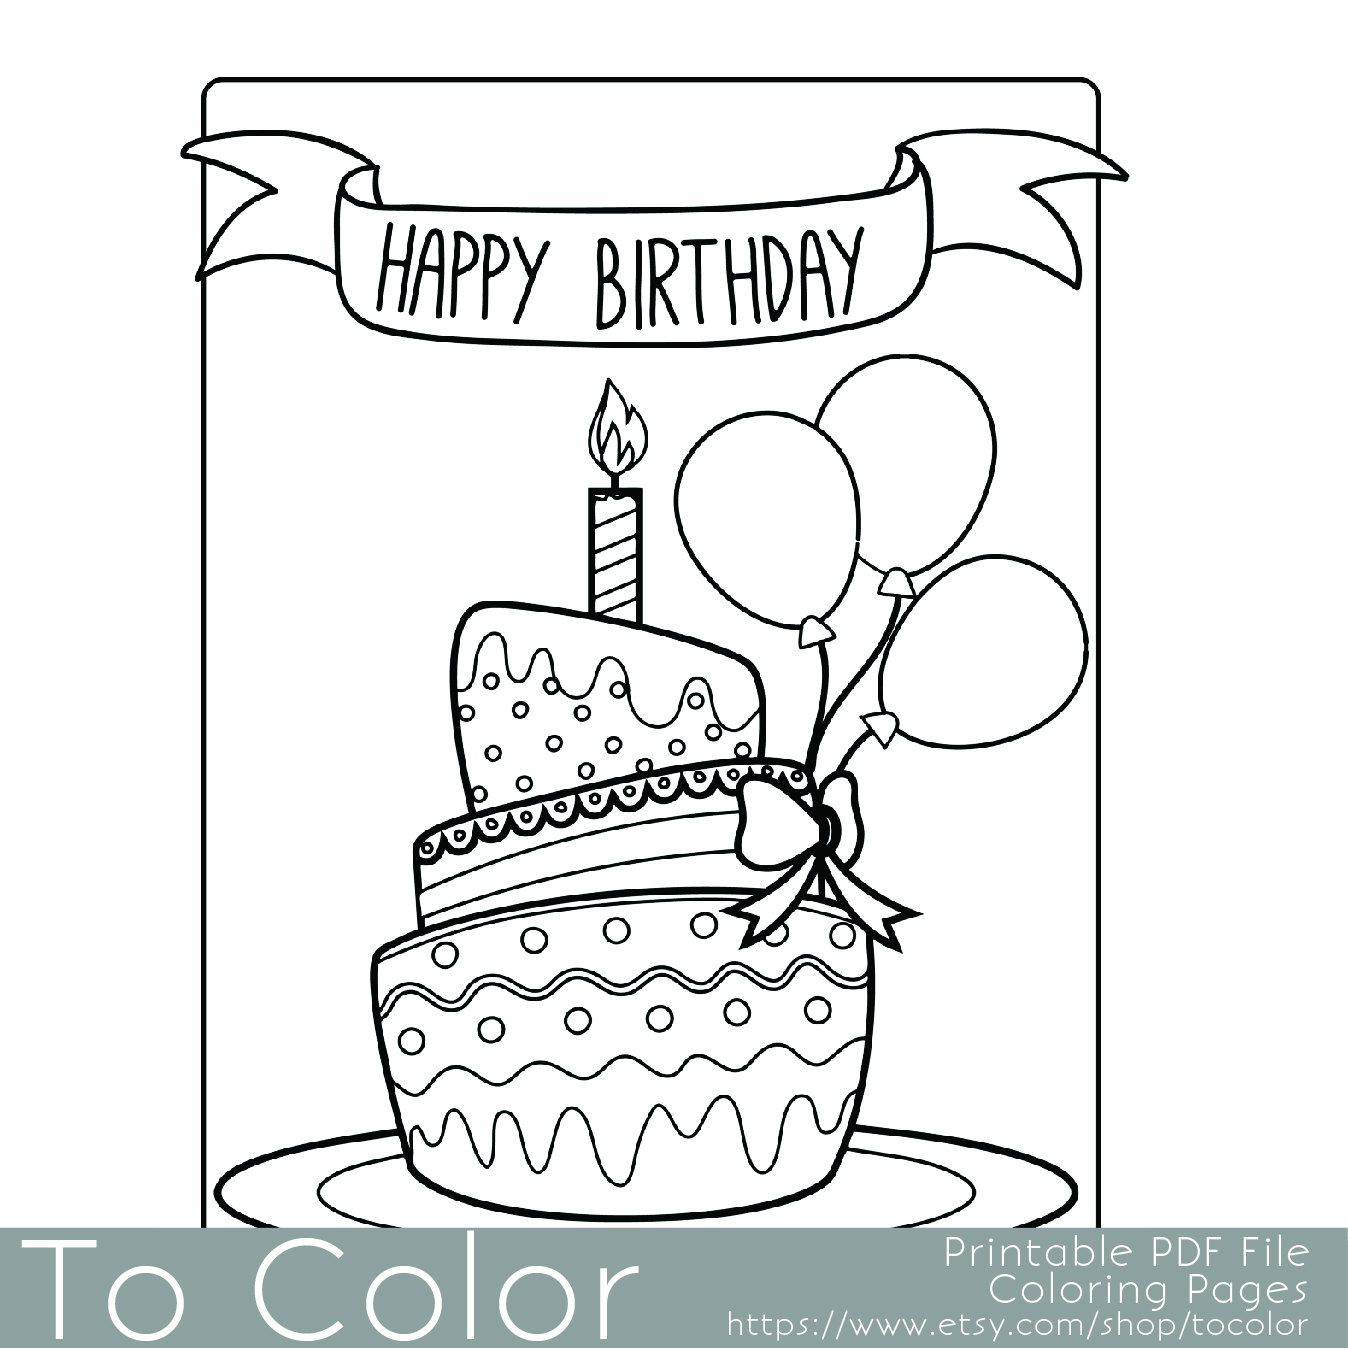 Printable Birthday Coloring Page for Adults, PDF / JPG